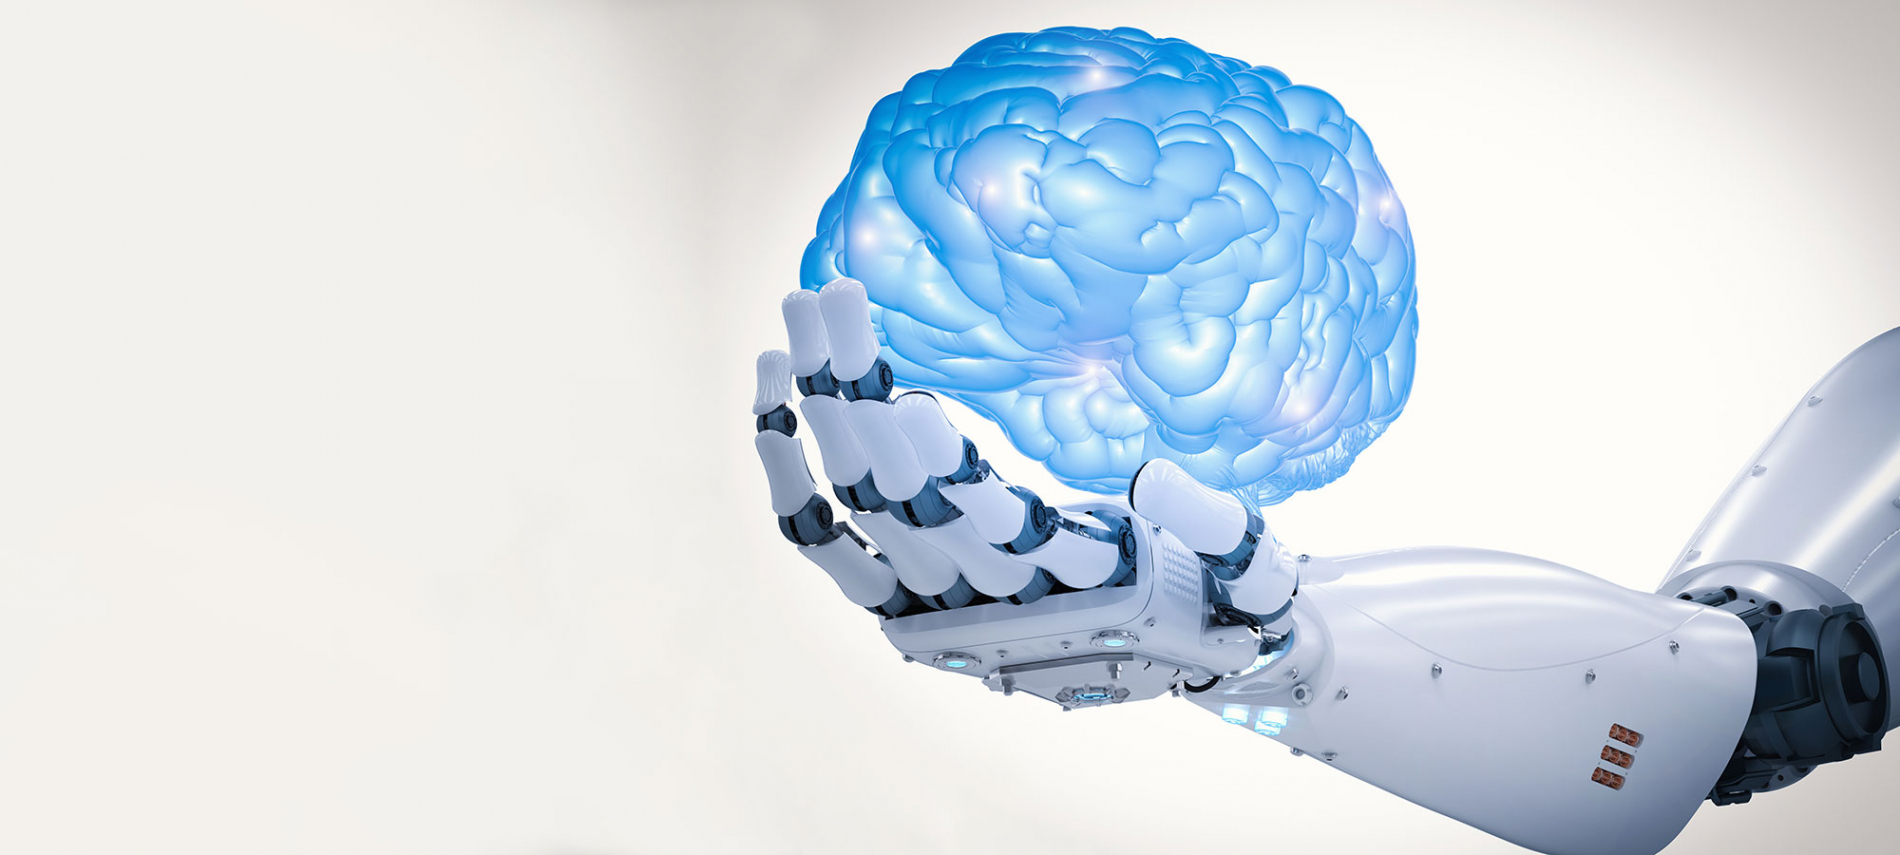 Header image with robotic arm and brain